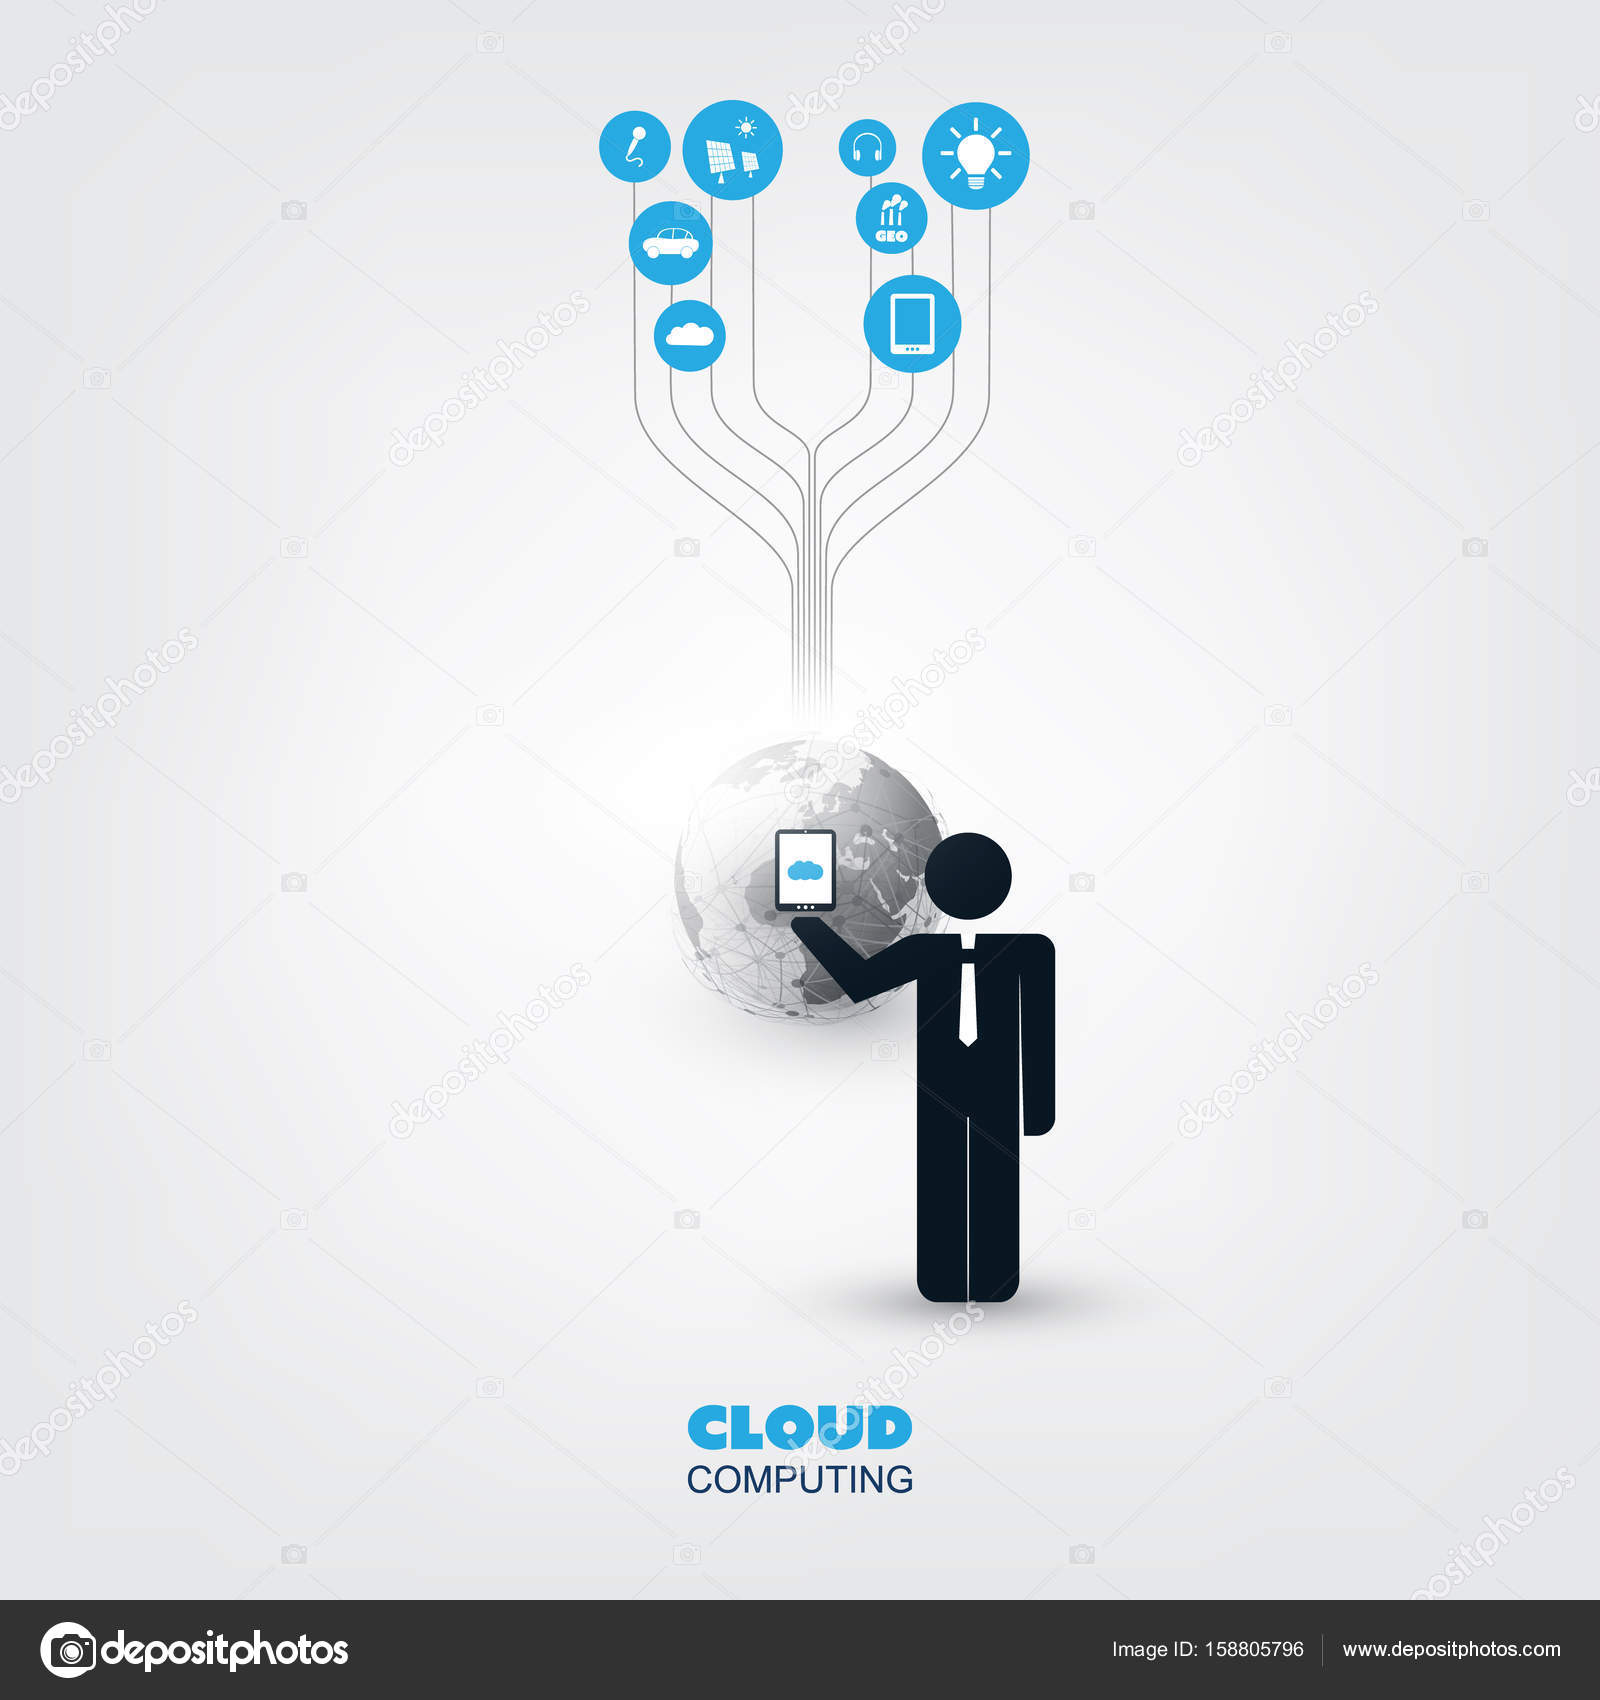 cloud computing business network design concept with a standing